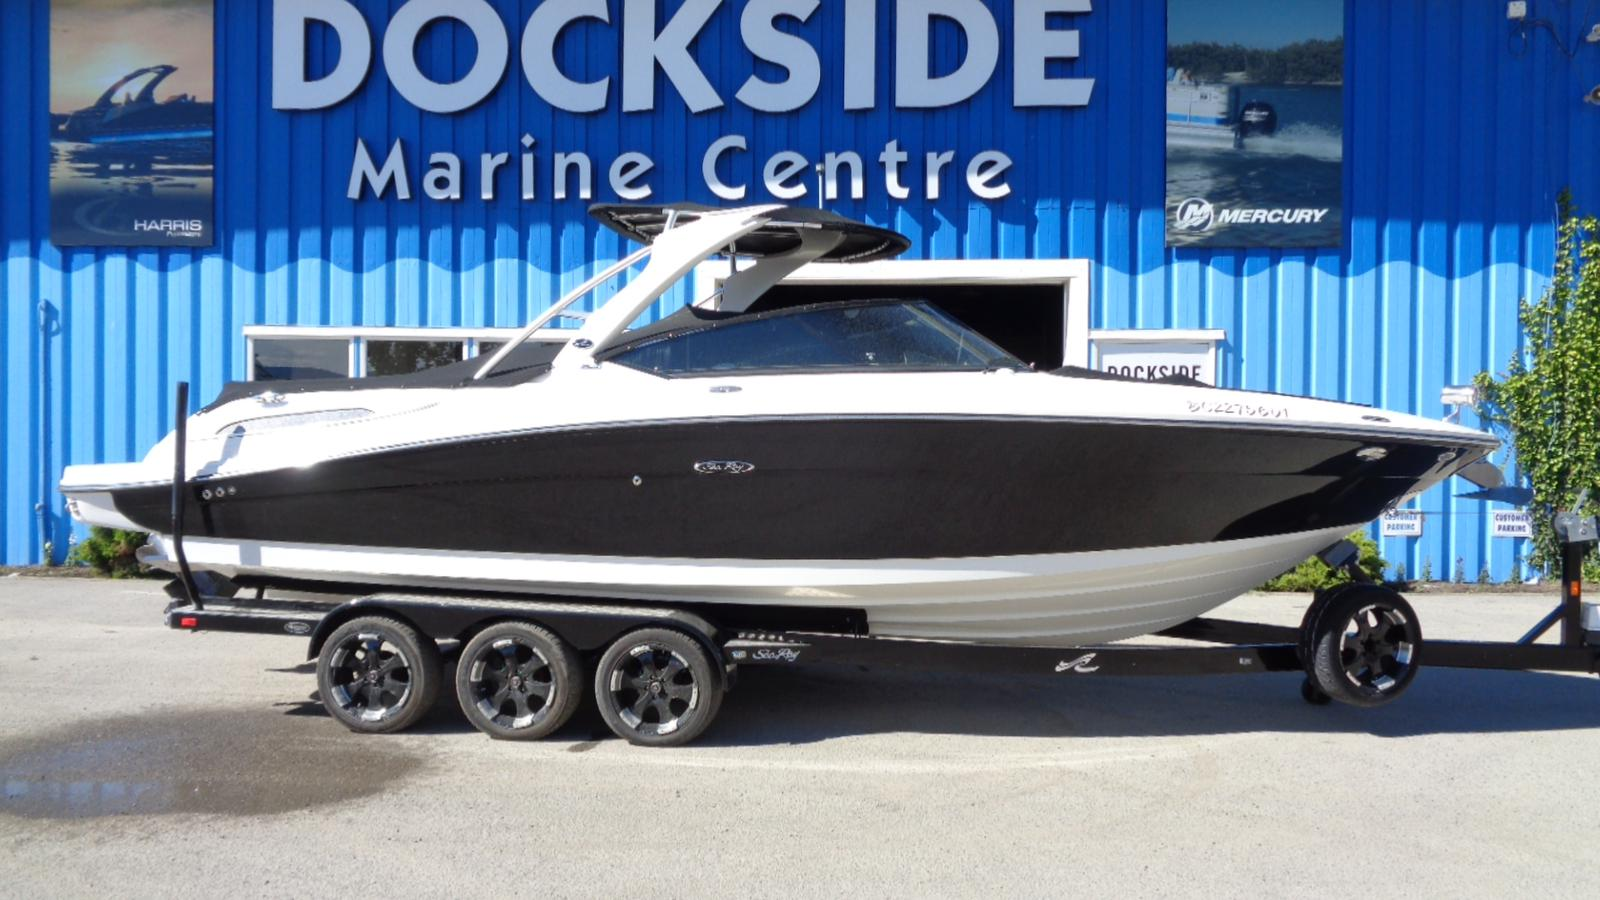 For Sale: 2010 Sea Ray Slx 270 27ft<br/>Dockside Marine Centre, LTD.